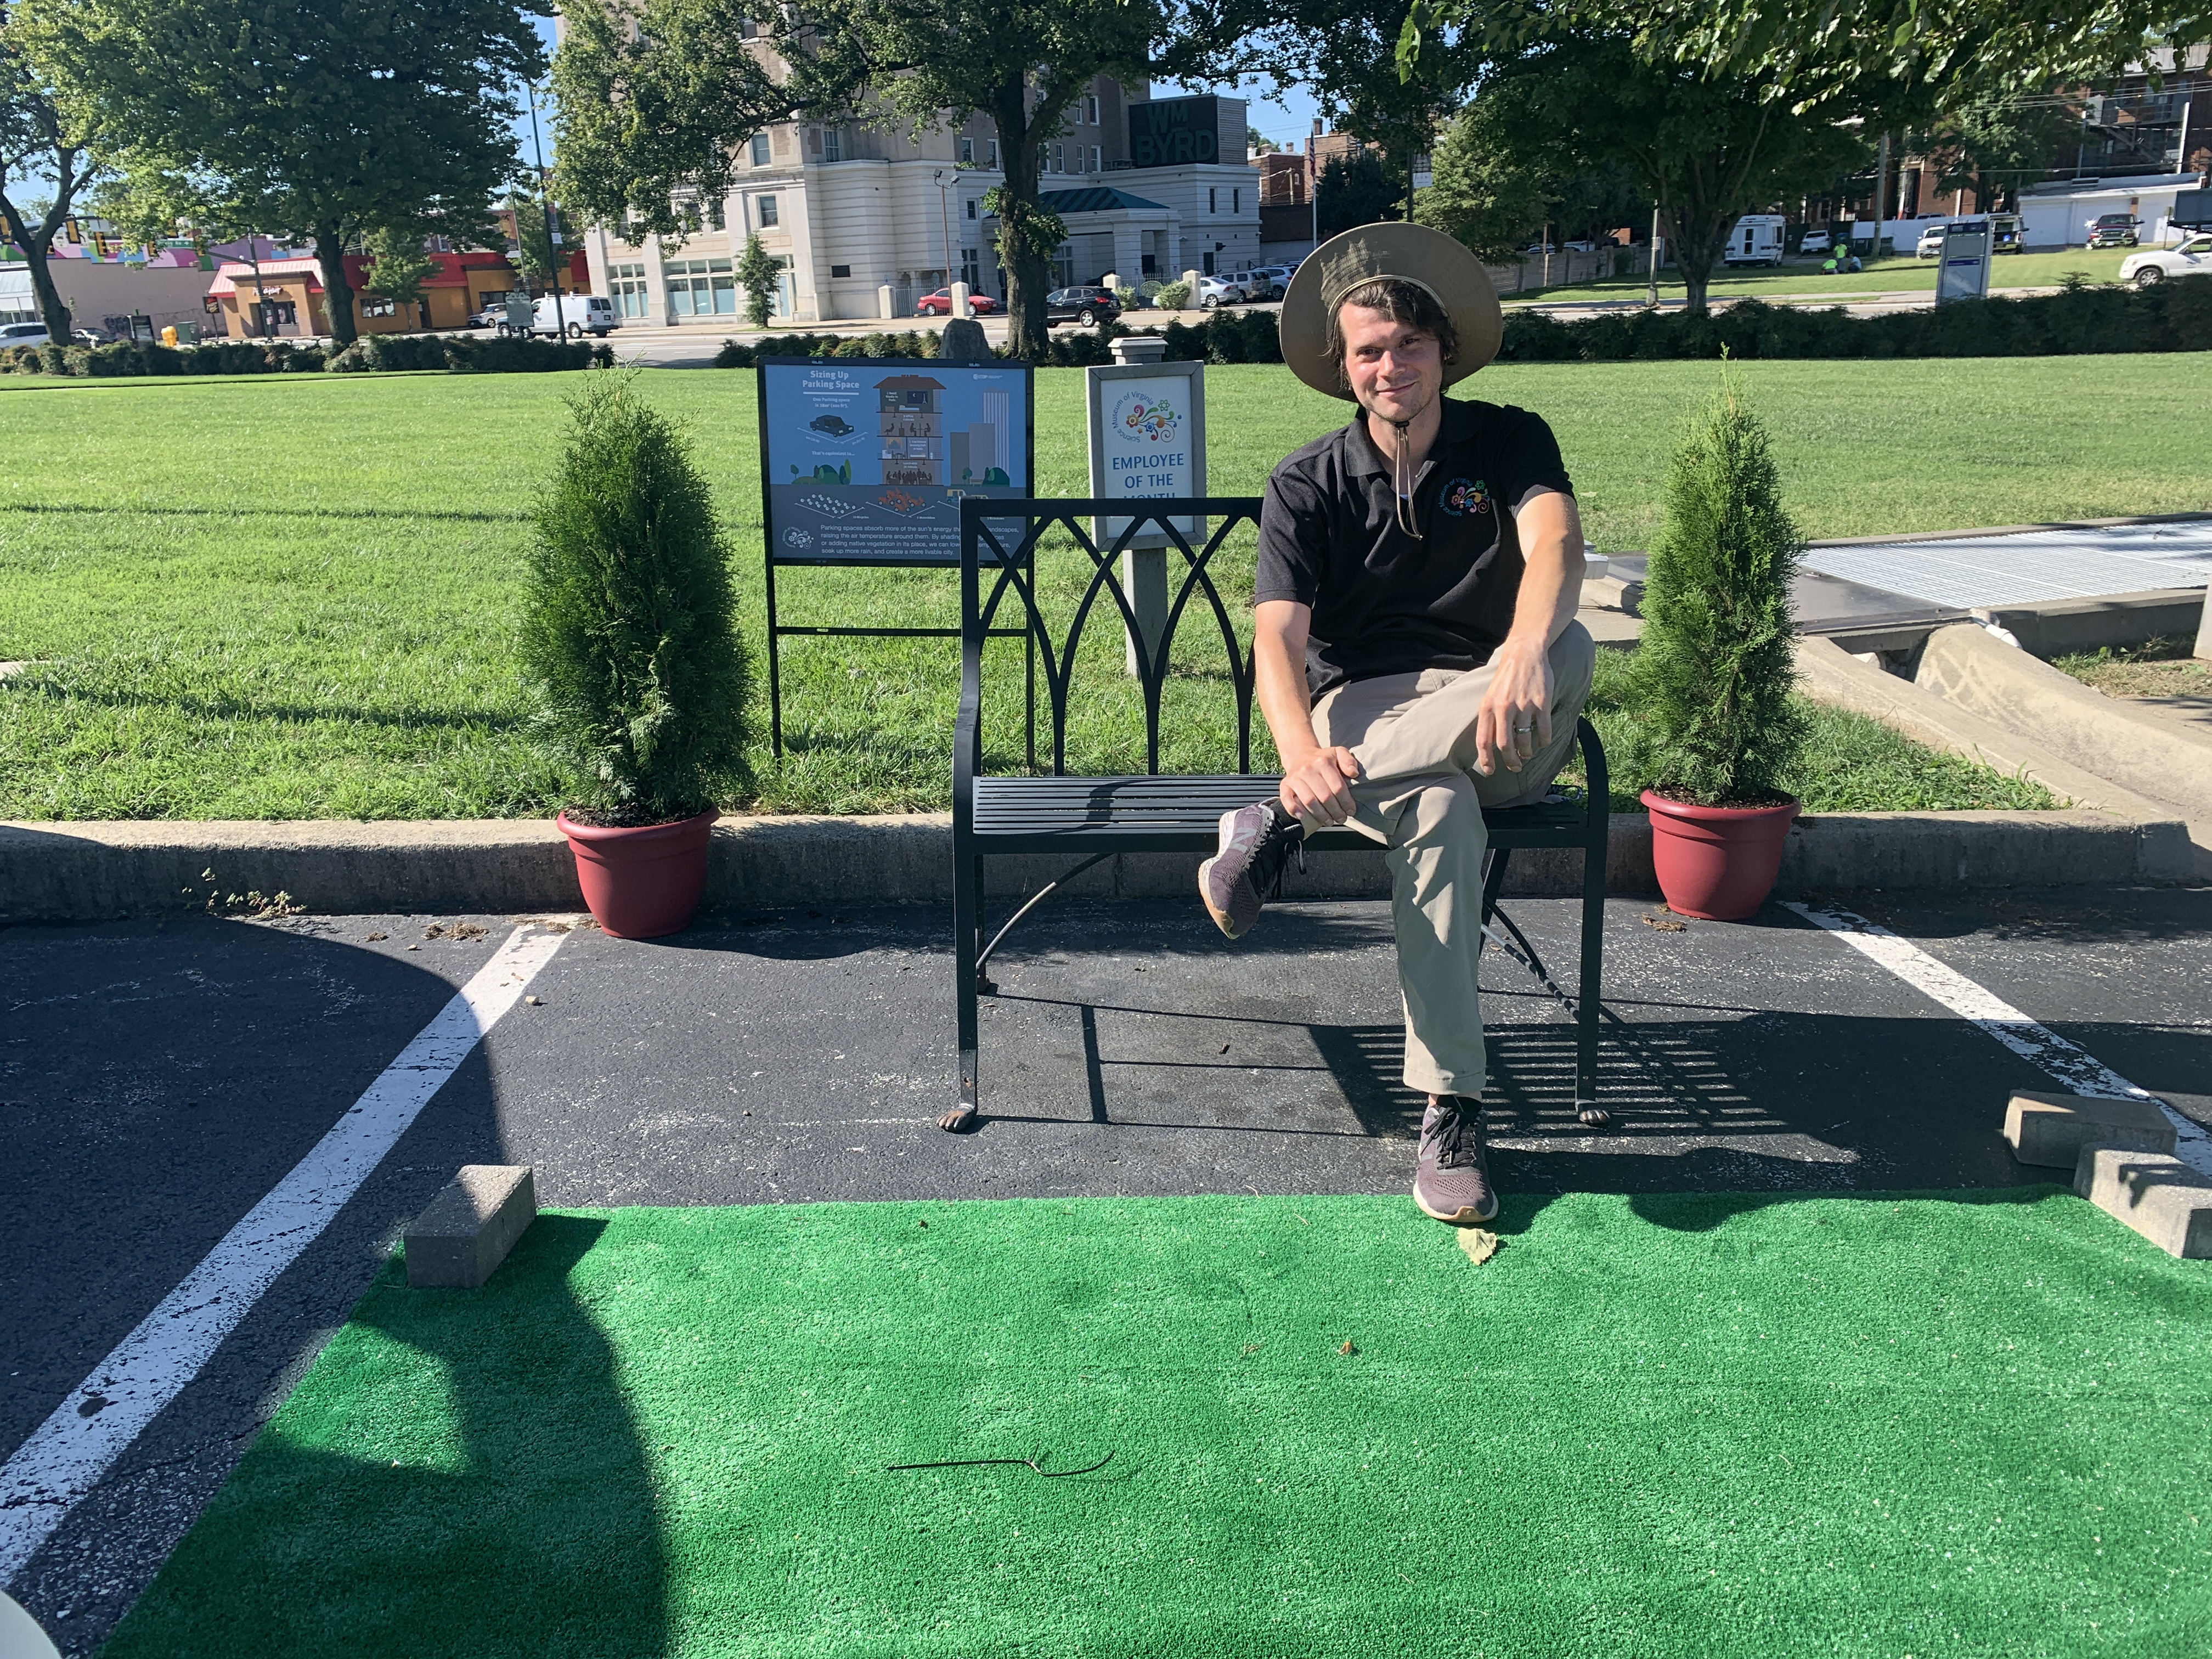 A Parking Space Becomes a 'Parklet' | WVTF